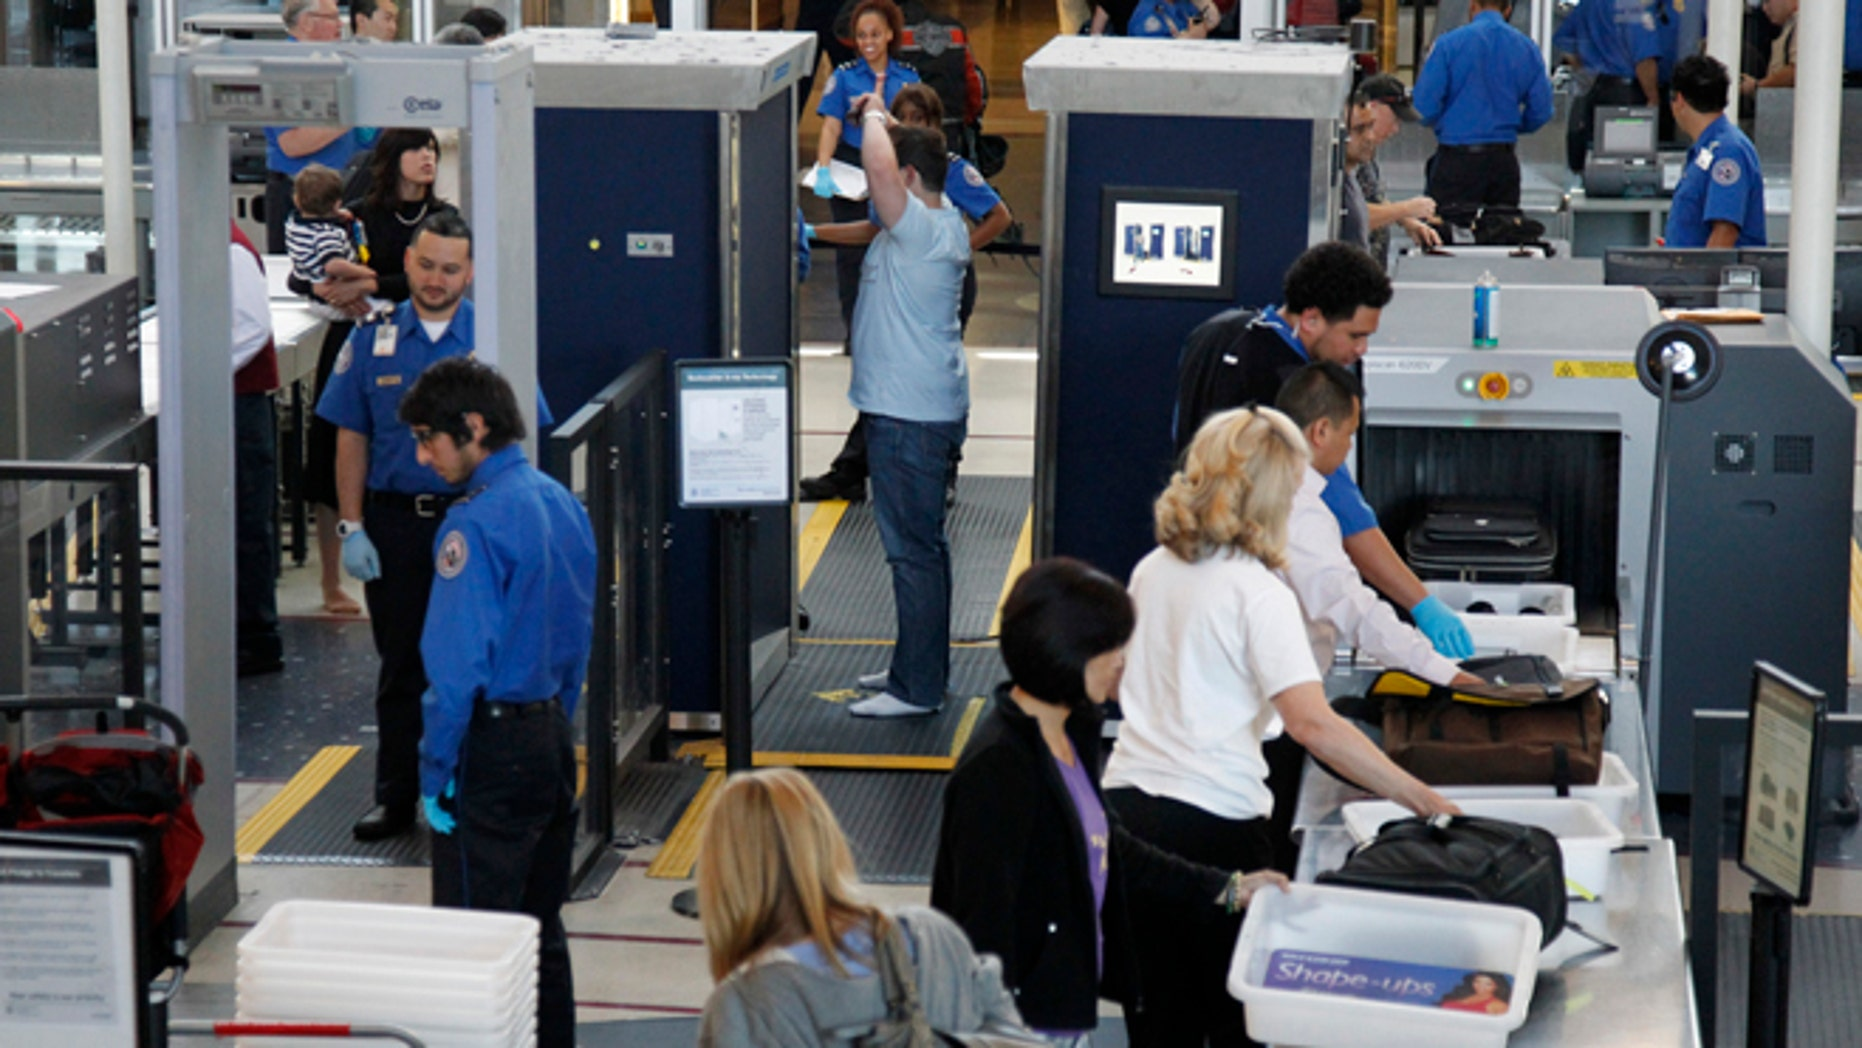 This May 2, 2011 photo shows a TSA security checkpoint at Los Angeles International Airport, in Los Angeles CA.